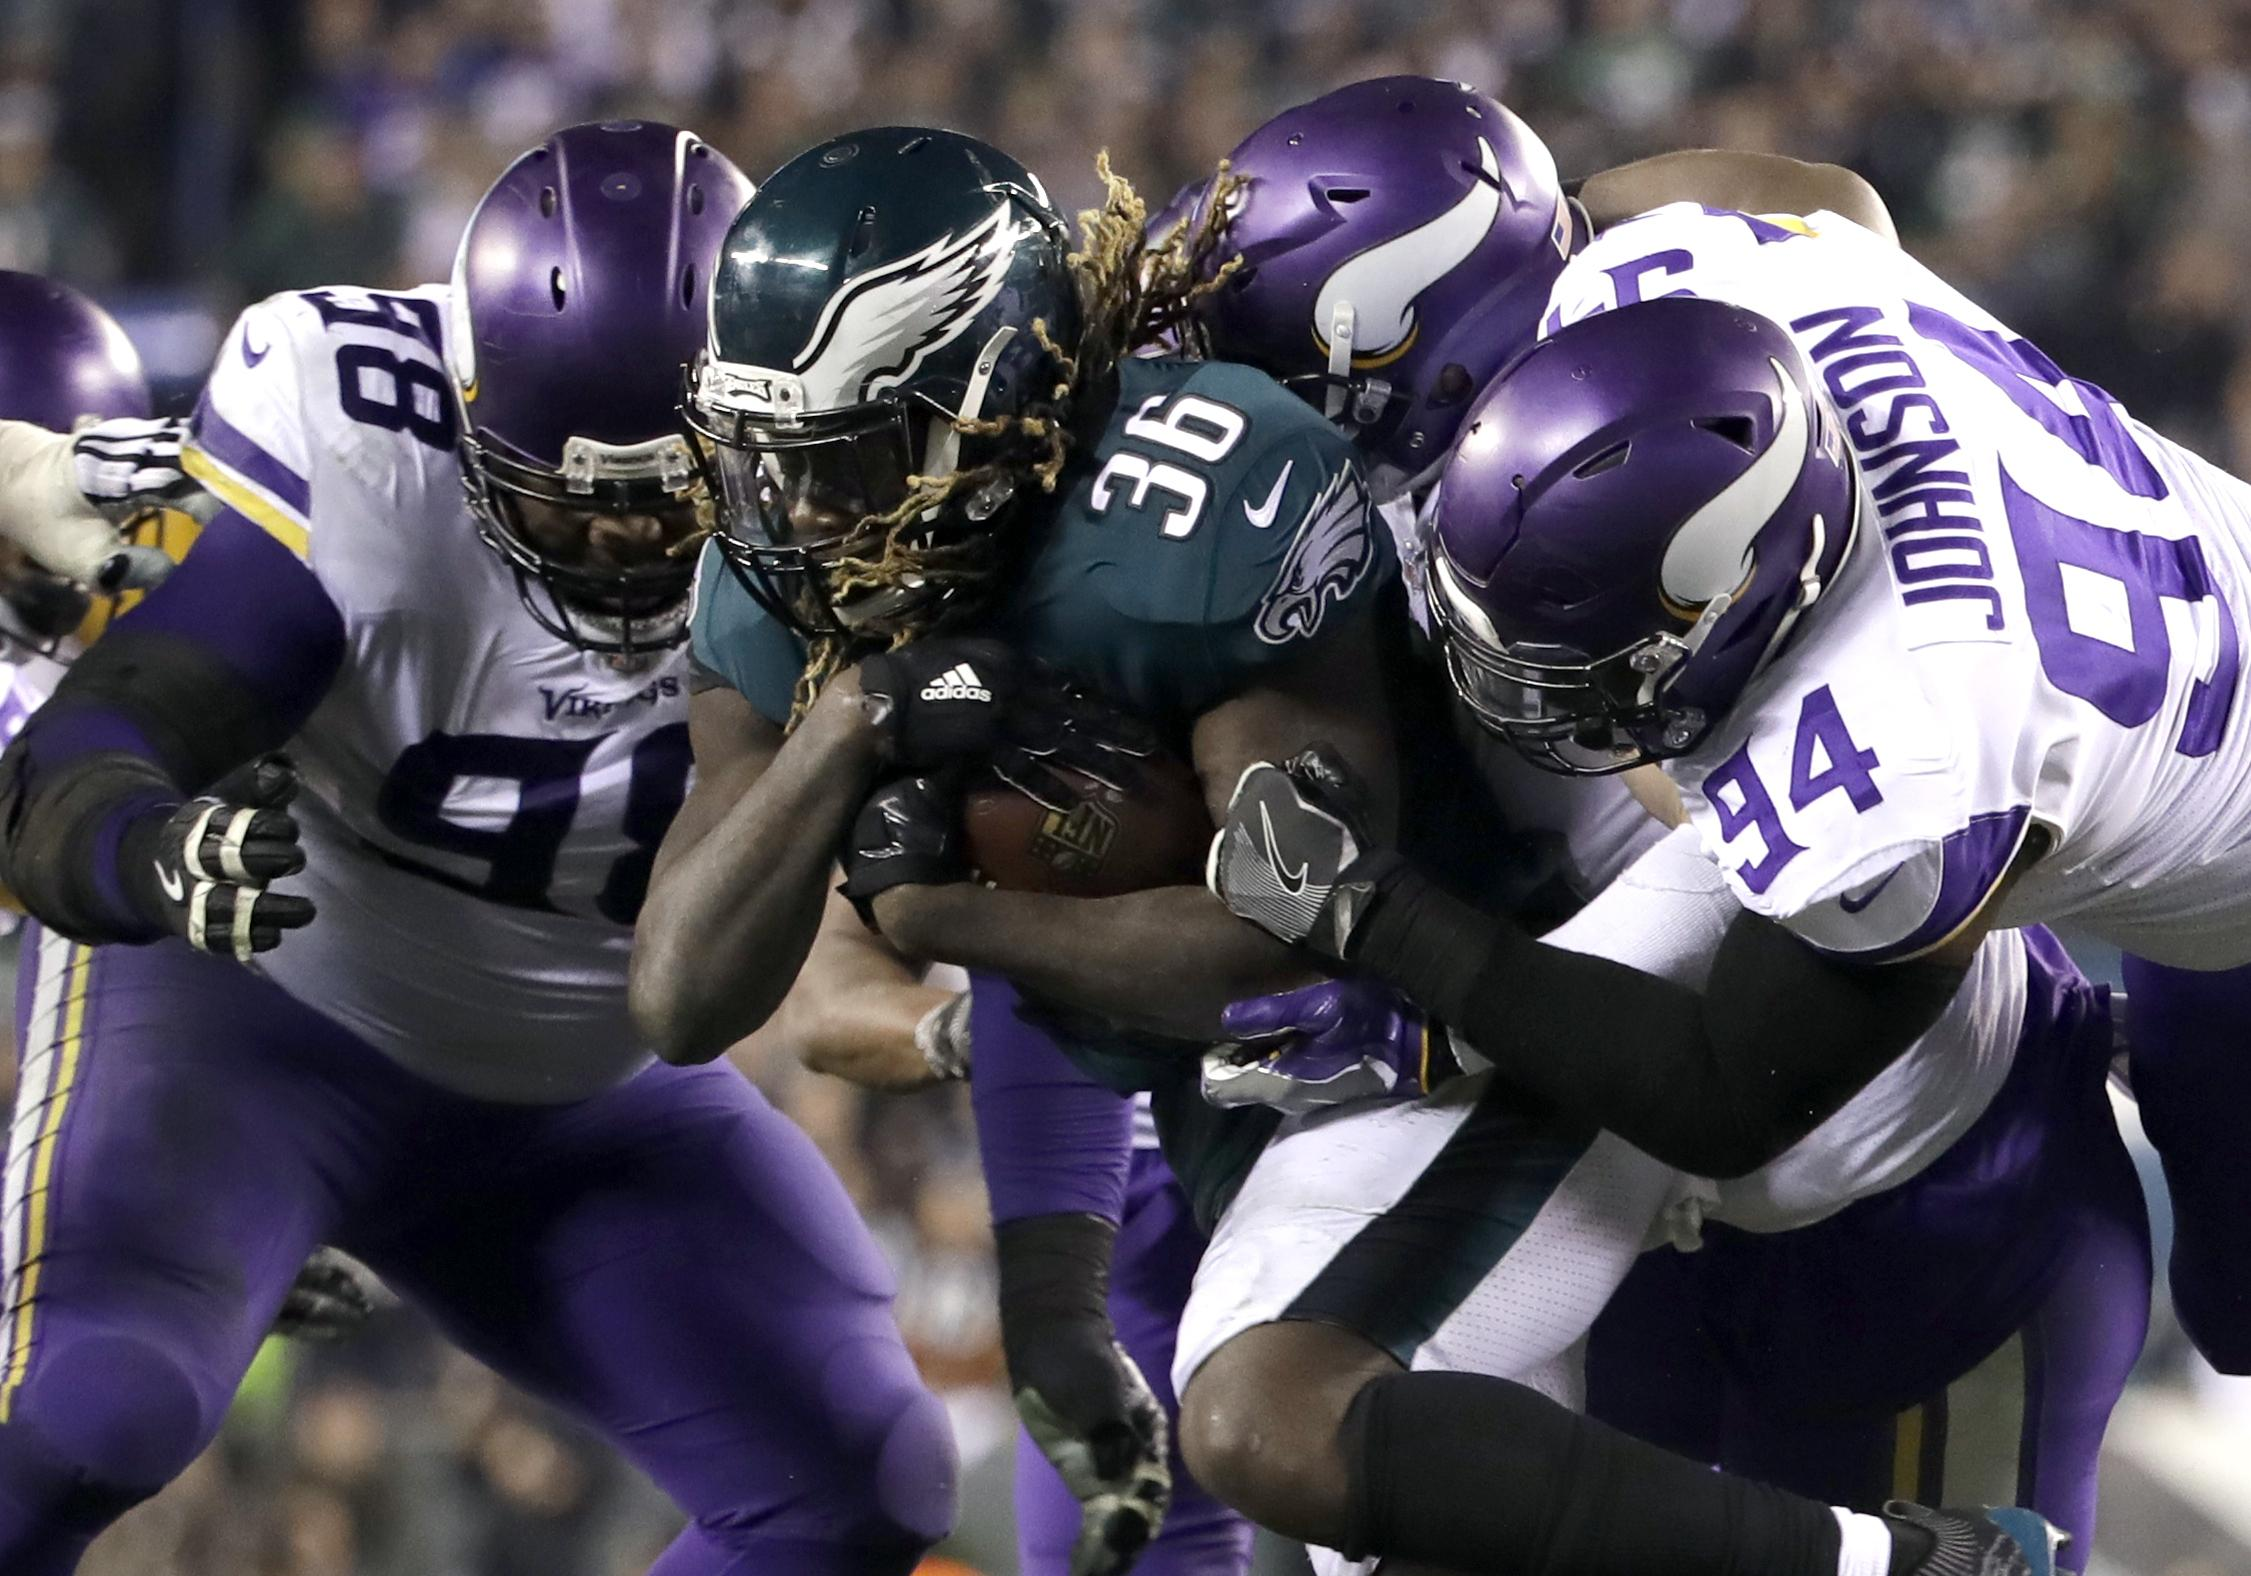 The Eagles are going up against reigning champs New England Patriots